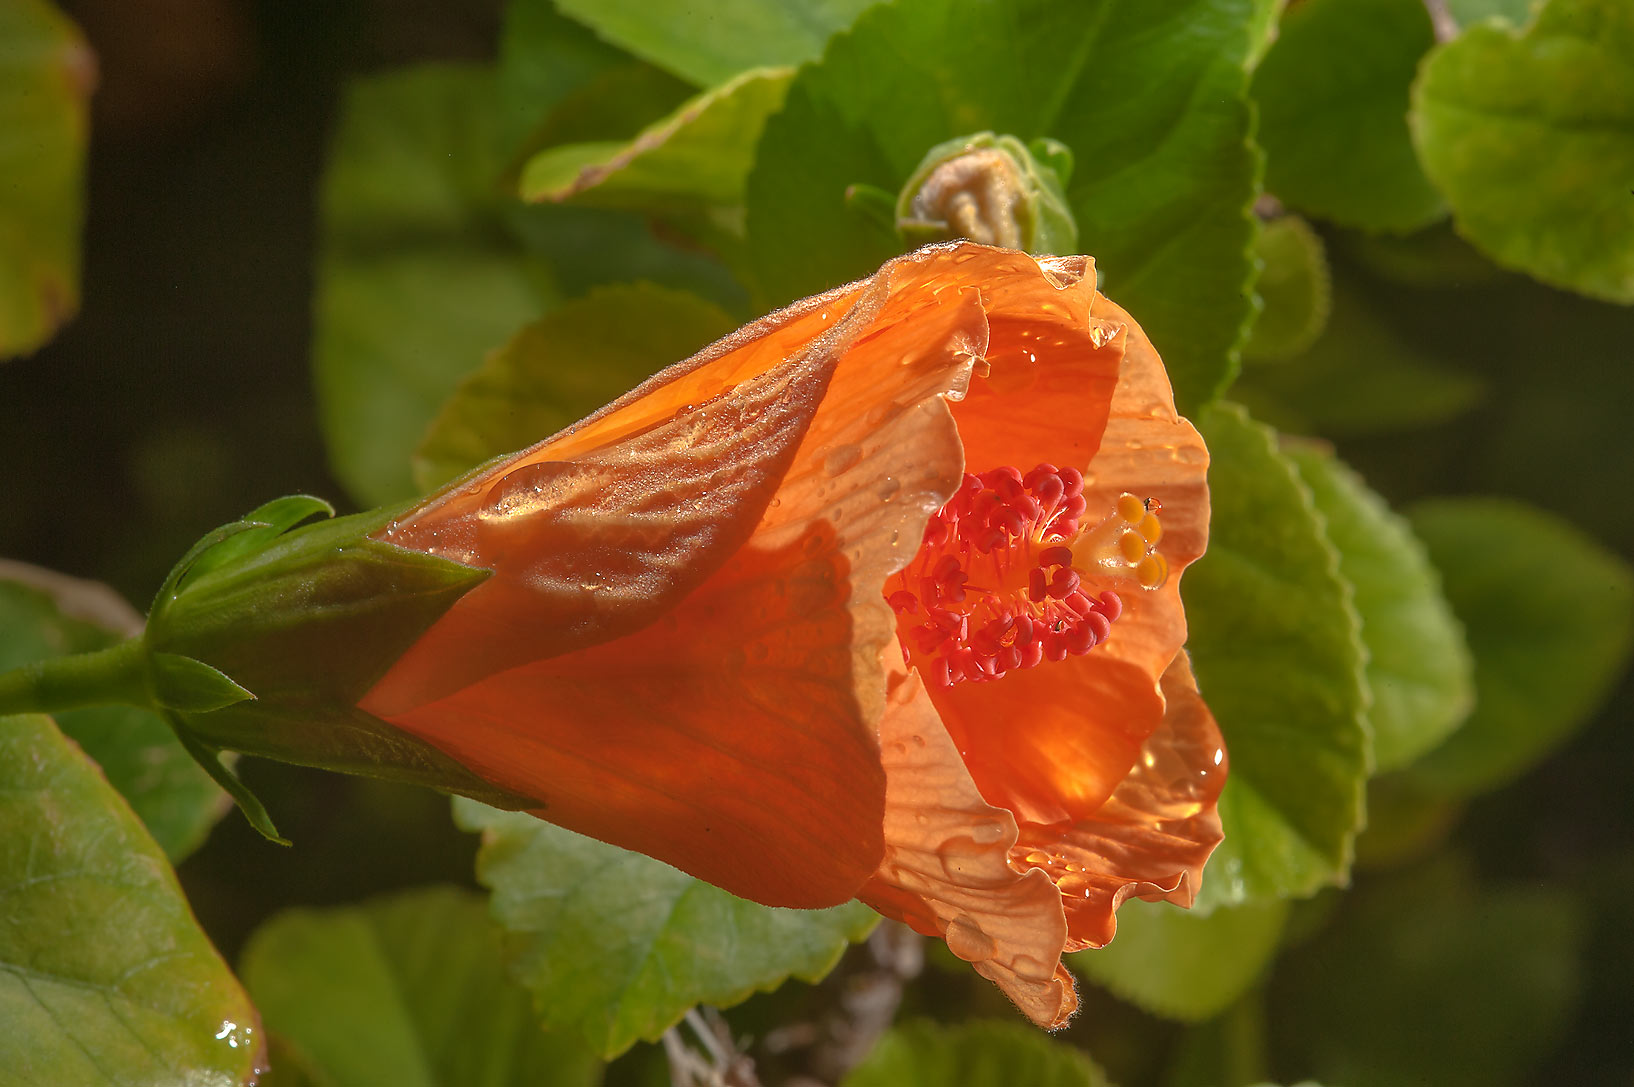 Orange half opened flower of China rose (Hibiscus...City Park. Ruwais, Northern Qatar